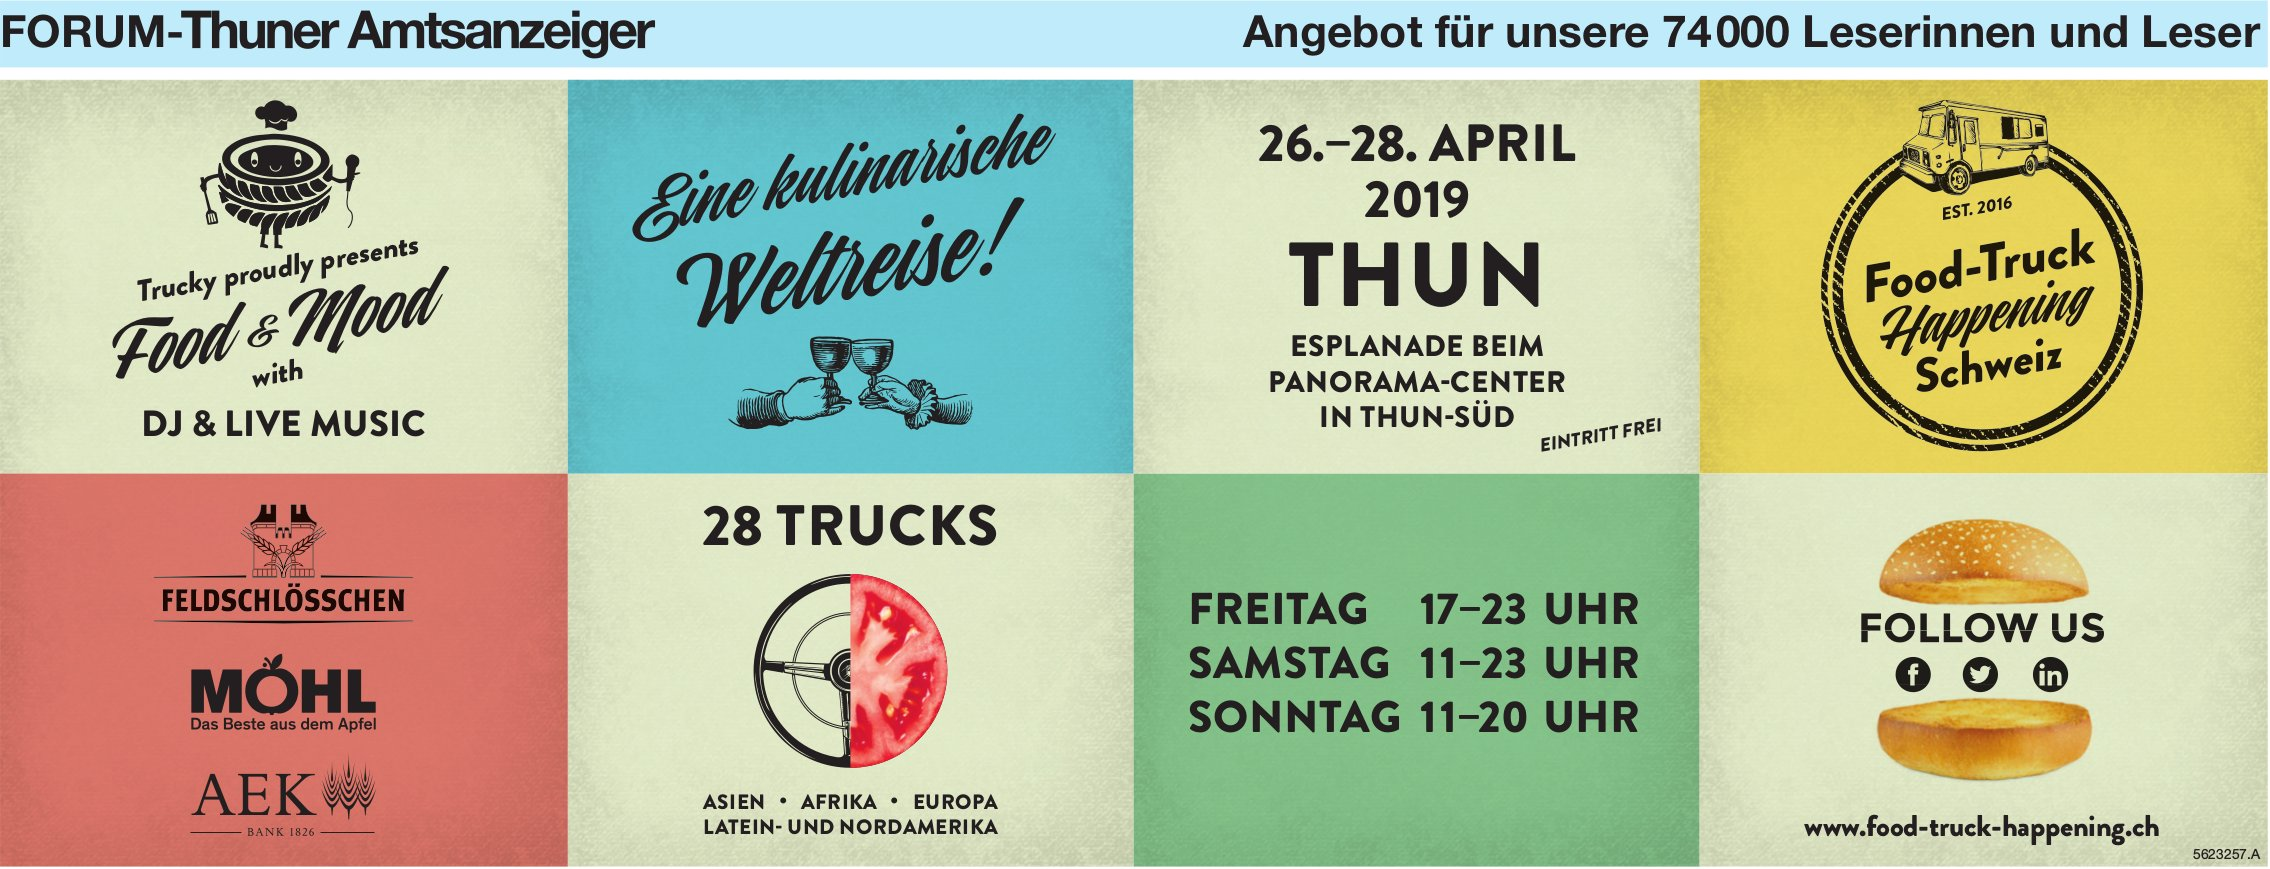 Forum-Thuner Amtsanzeiger - Food-Truck Happening, Thun, 26.-28. April